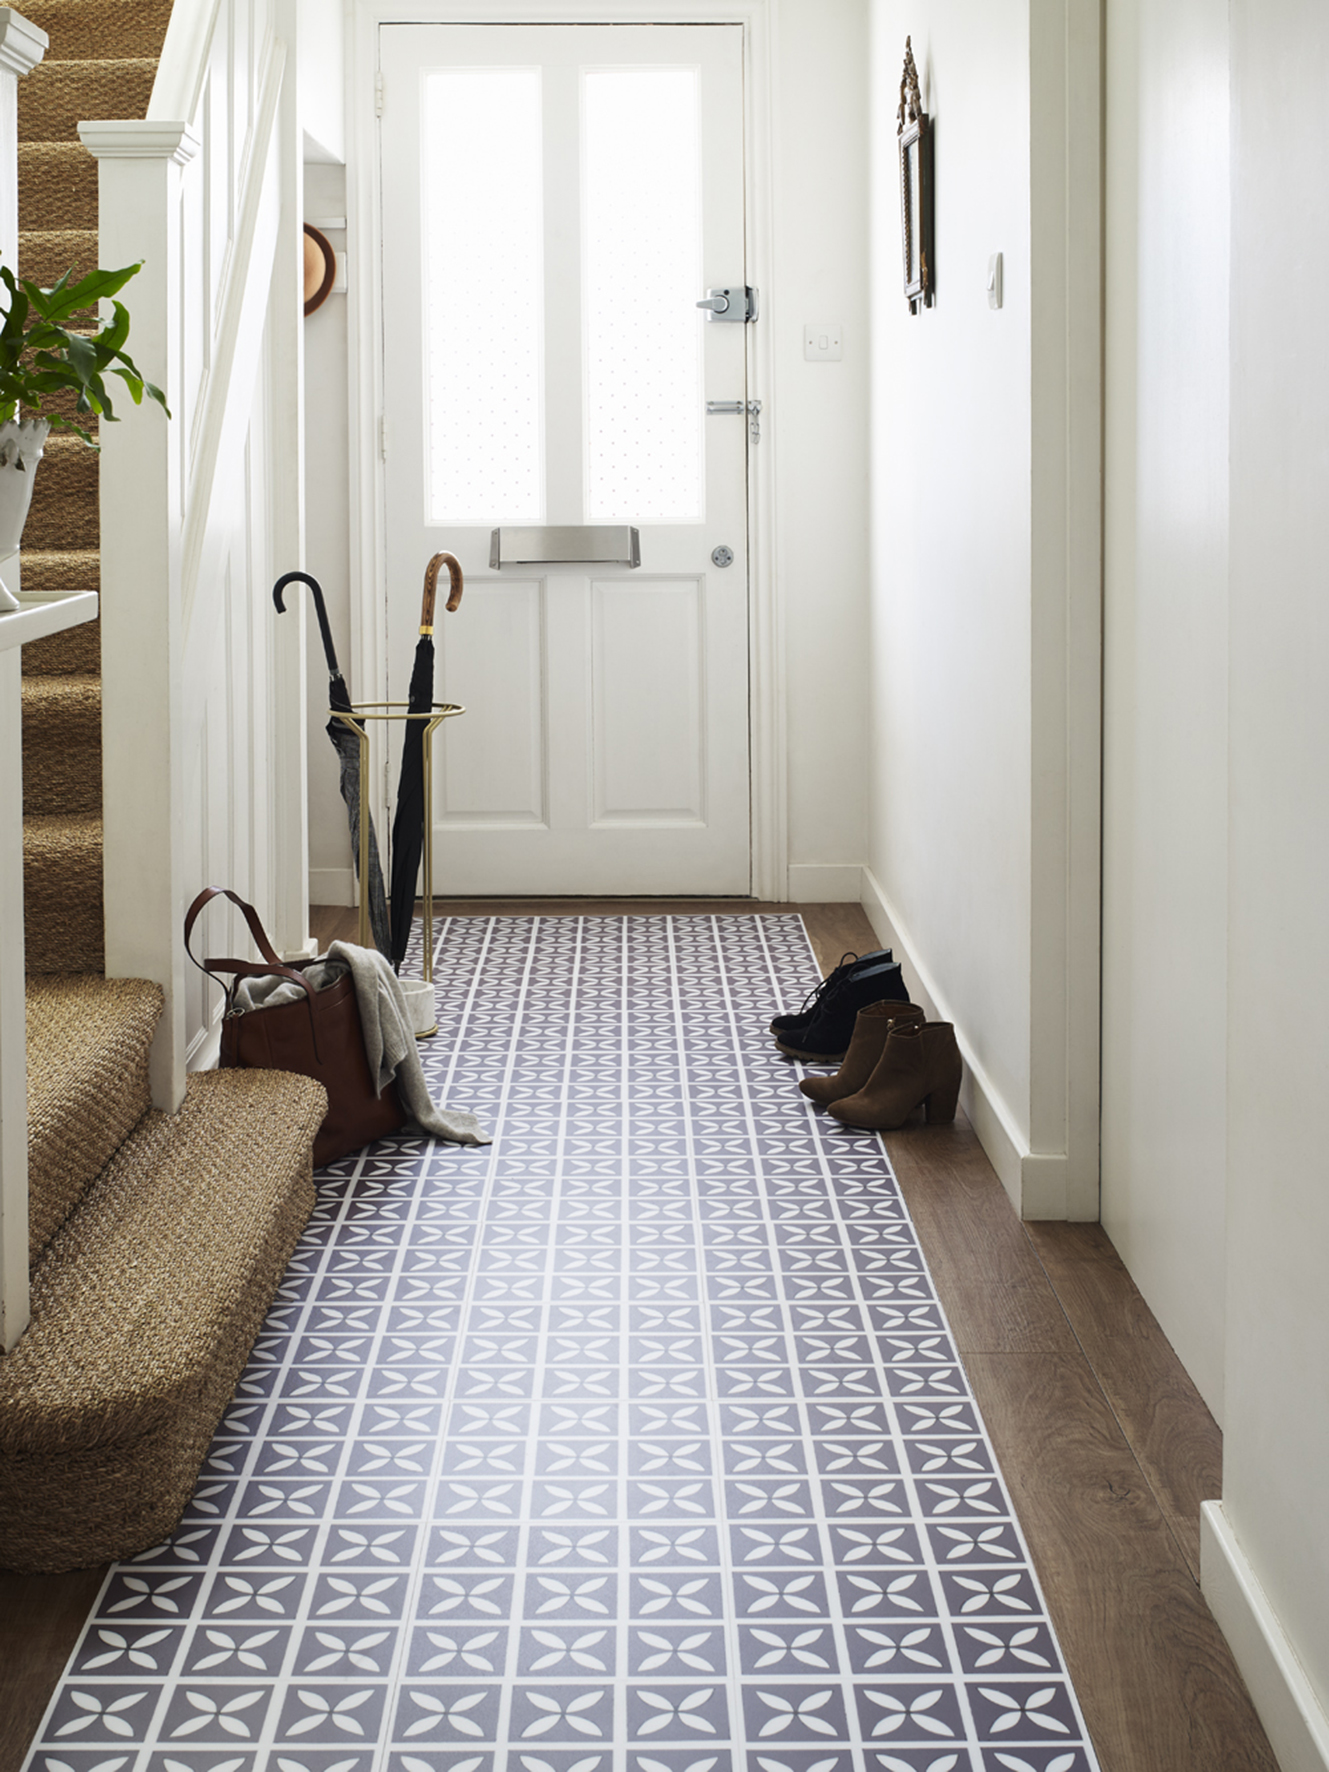 The Signature Collection: Create statement floors with the new Dee Hardwicke range